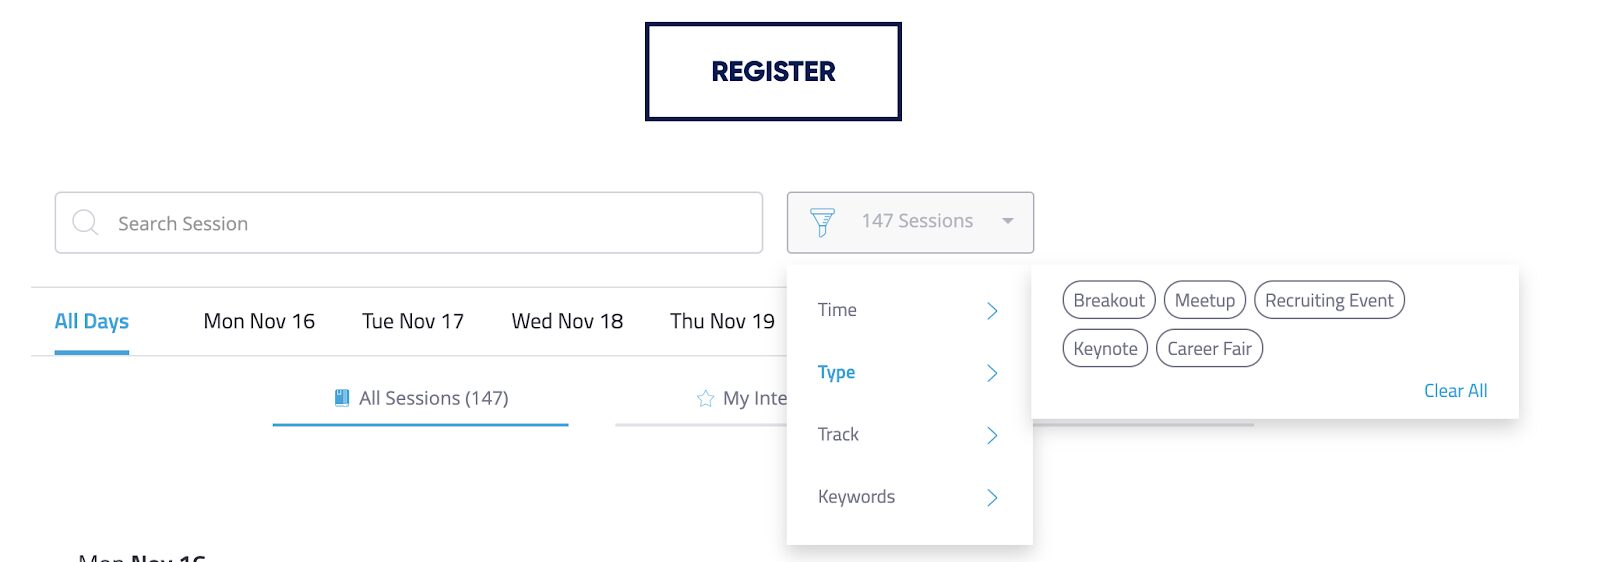 The agenda section of the site with the Sessions filter selected and the 'Type' option selected to see the types 'Breakout', 'Meetup', 'Recruiting Event', 'Keynote', and 'Career Fair'